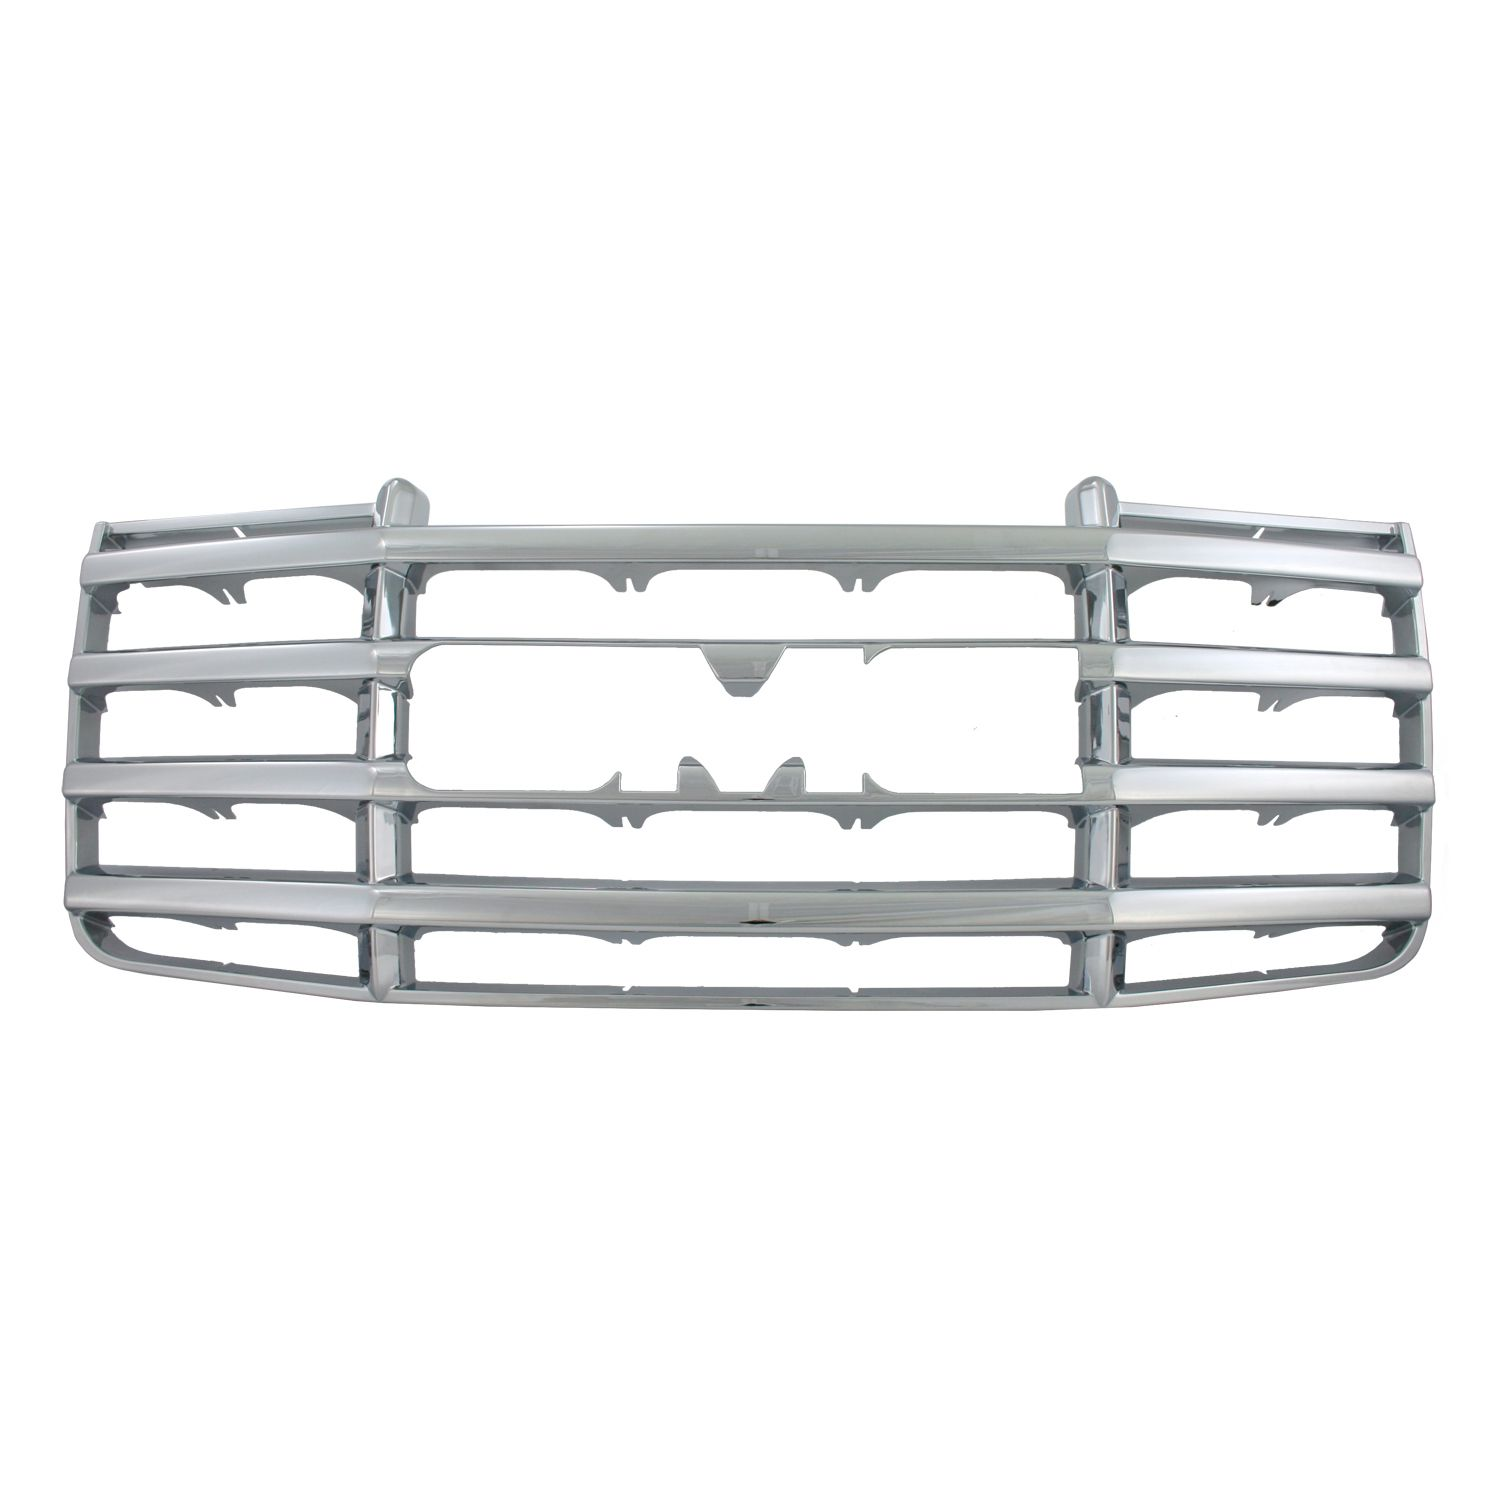 Pilot Automotive GI-54 Grille Insert Bully Imposter; Inst...